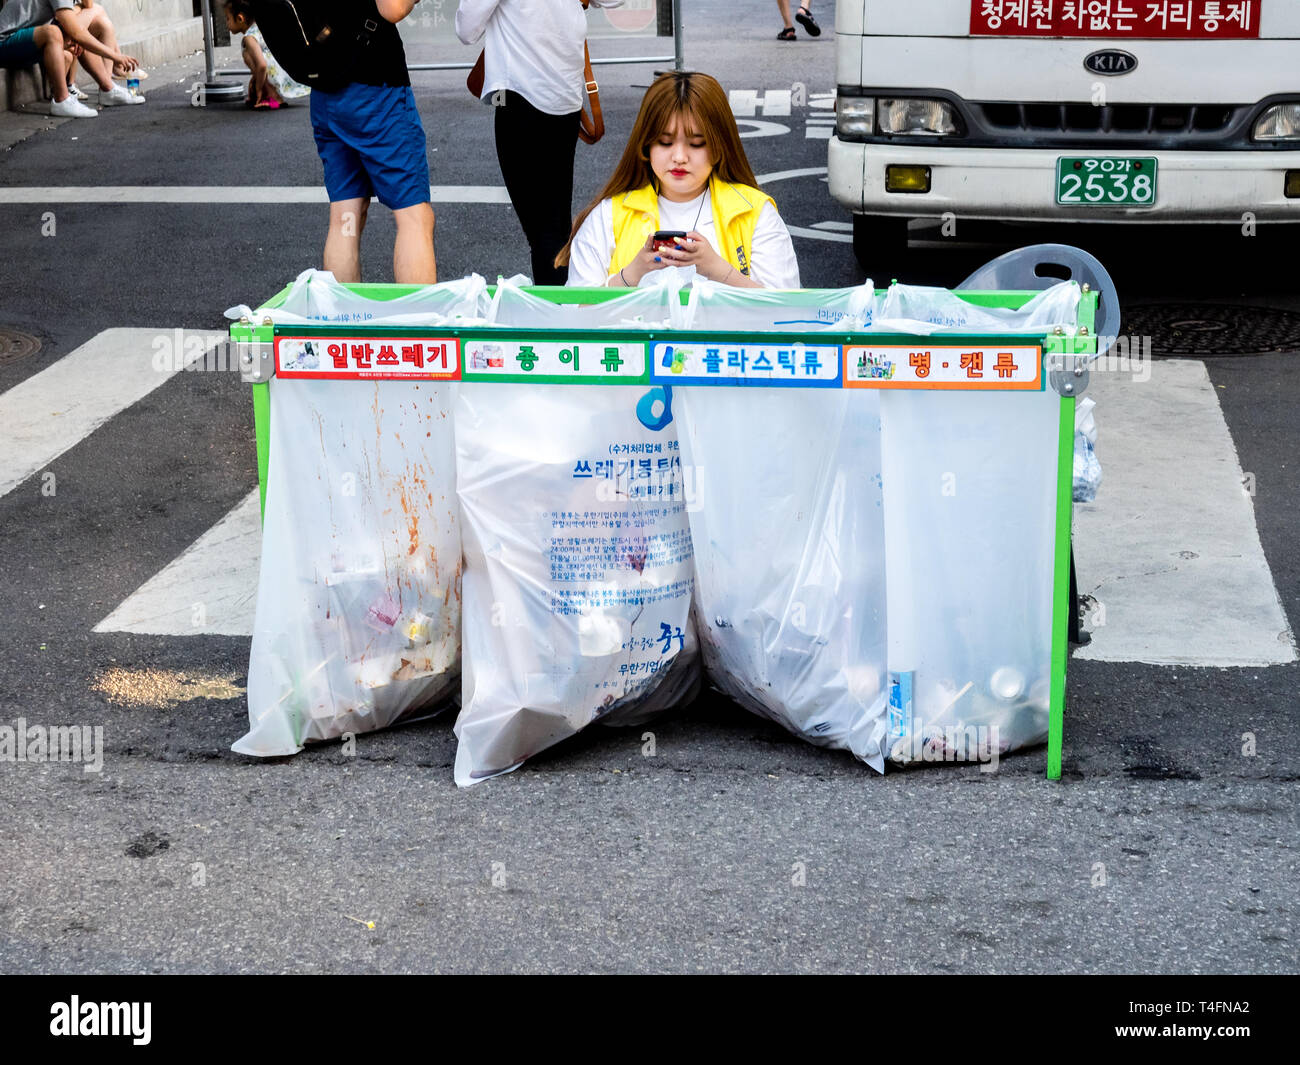 Seoul, South Korea - June 17, 2017: Woman sitting near waste sorting containers with colored inscriptions for plastic, glass bottles and paper. Stock Photo